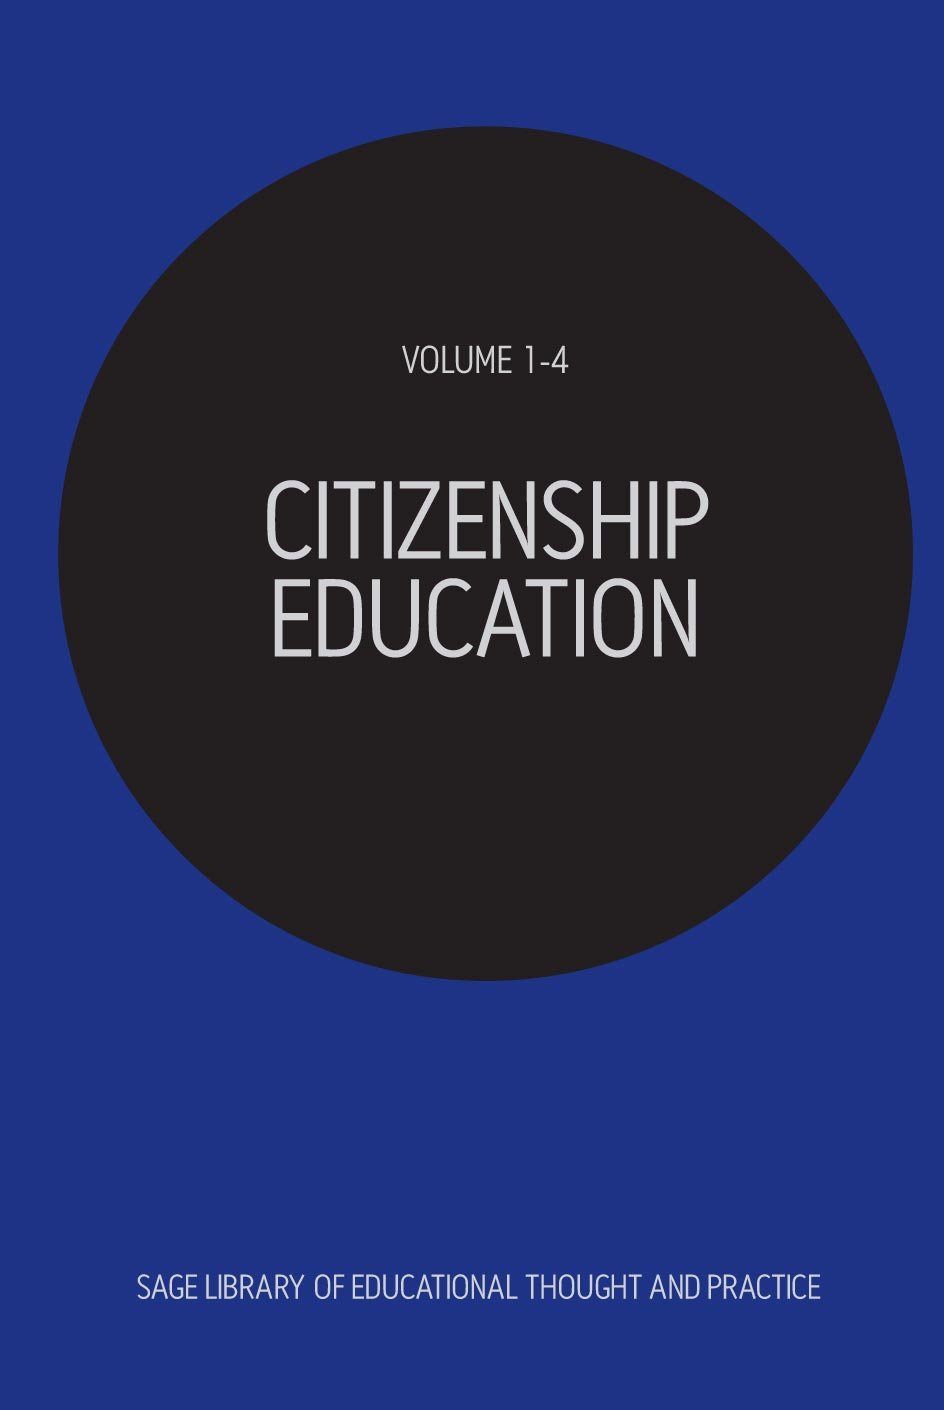 Download Citizenship Education (Sage Library of Educational Thought & Practice) (4 Volumes) ebook